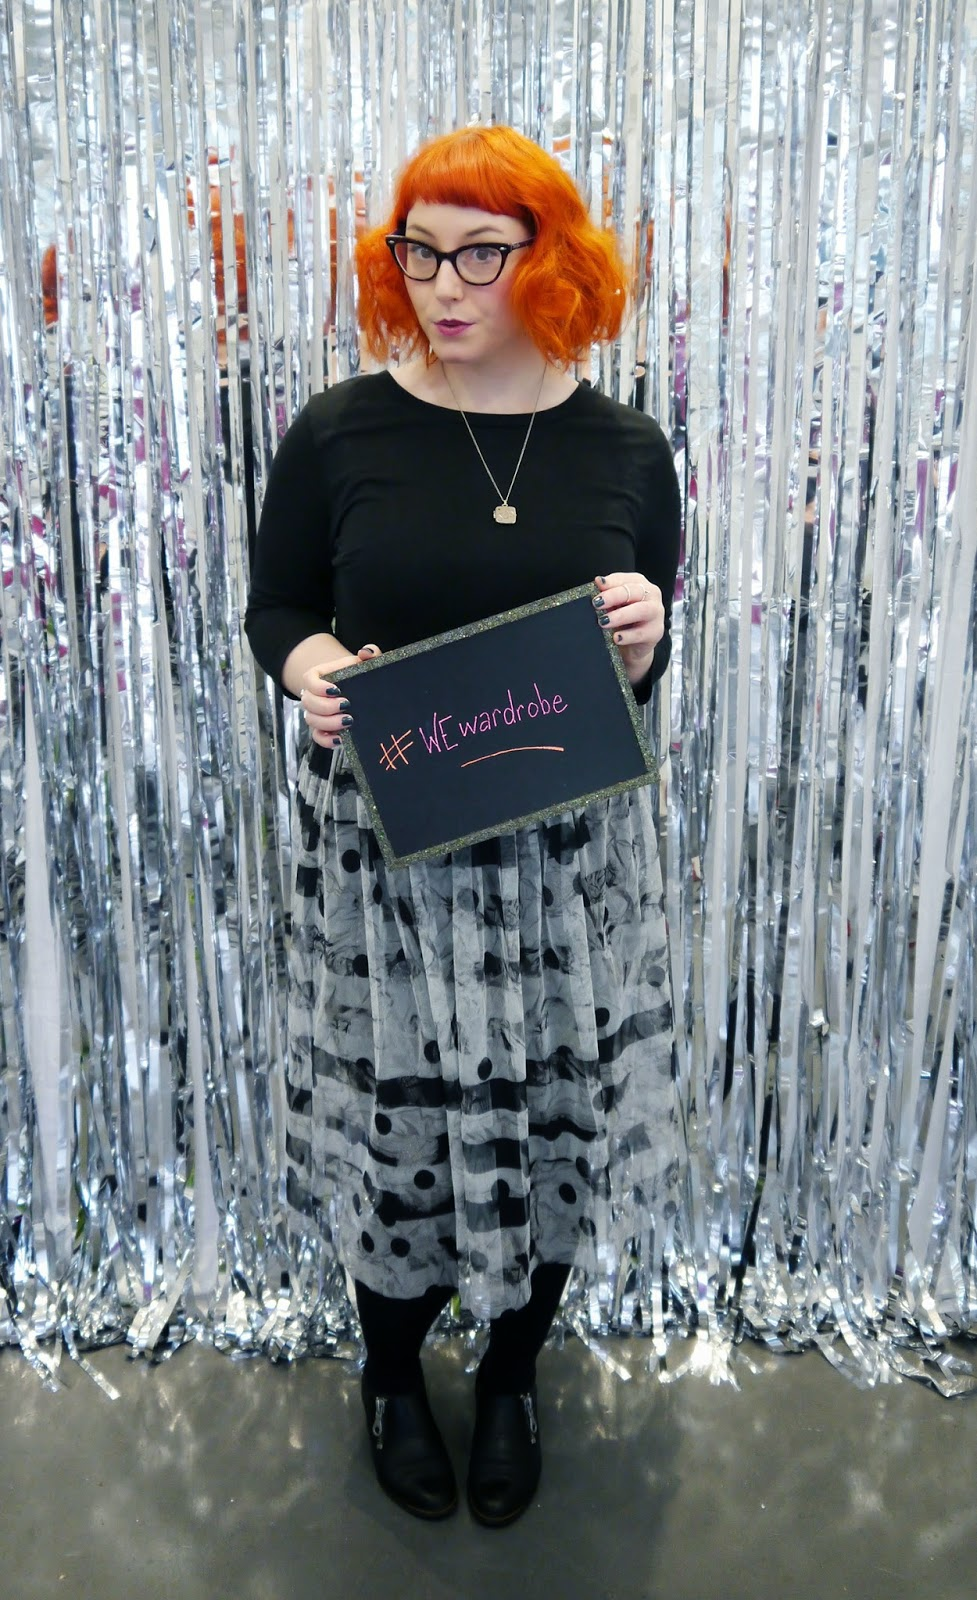 What Helen Wore, Outfit, Scottish Blogger, Wear Eponymous, The Wardrobe, Pop Up Shop, #WEwardrobe, Reg Head, ginger, photobooth, blogger photobooth